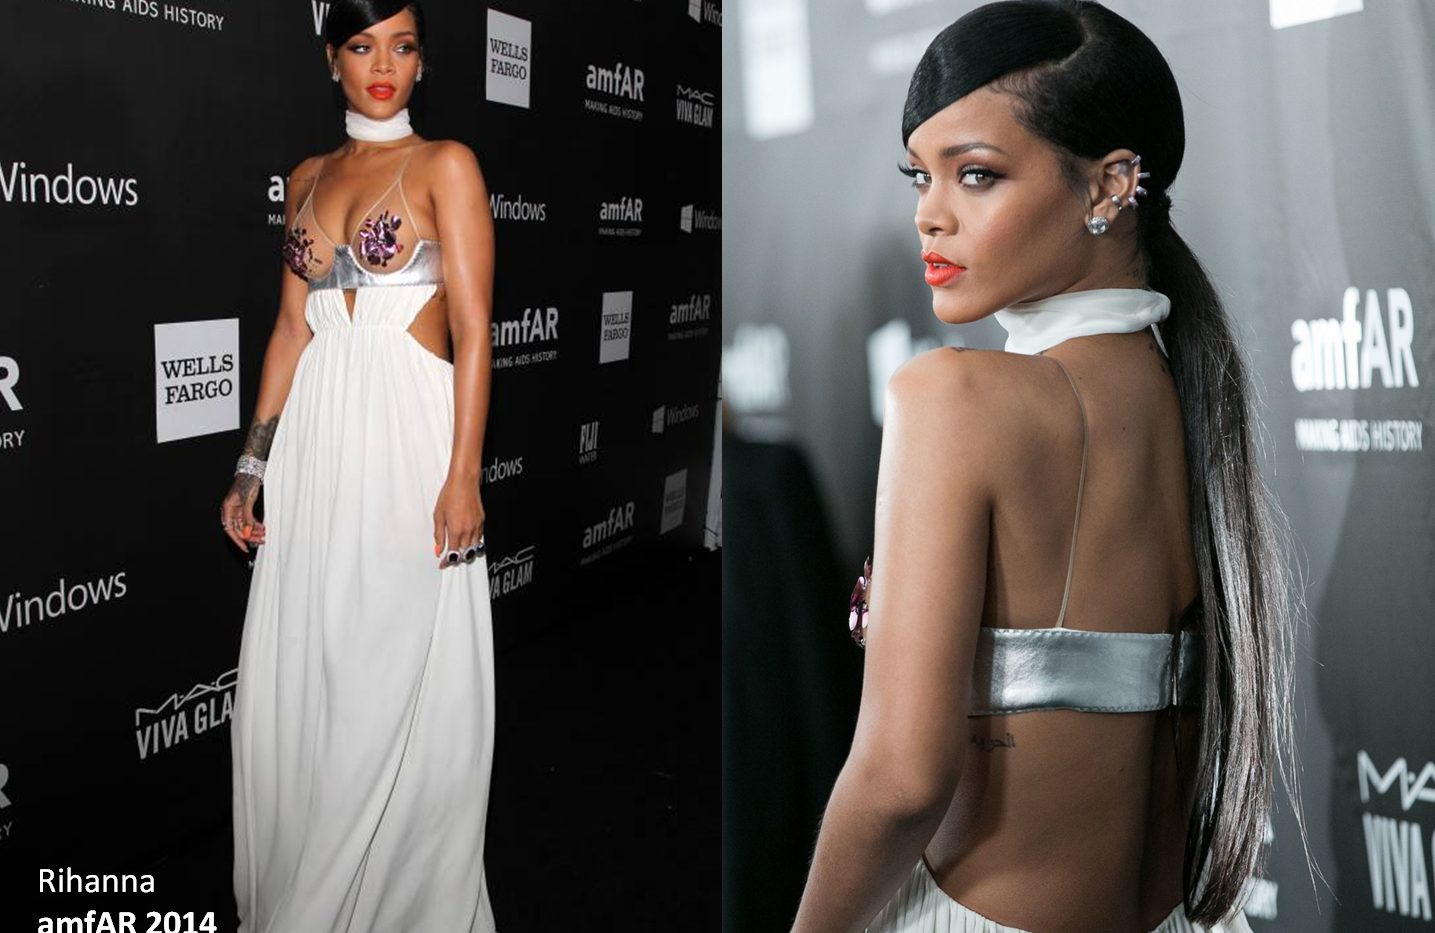 Rihanna at the amFAR 2014 wearing white gown - Project for TOM FORD - dressmaking - tailoring